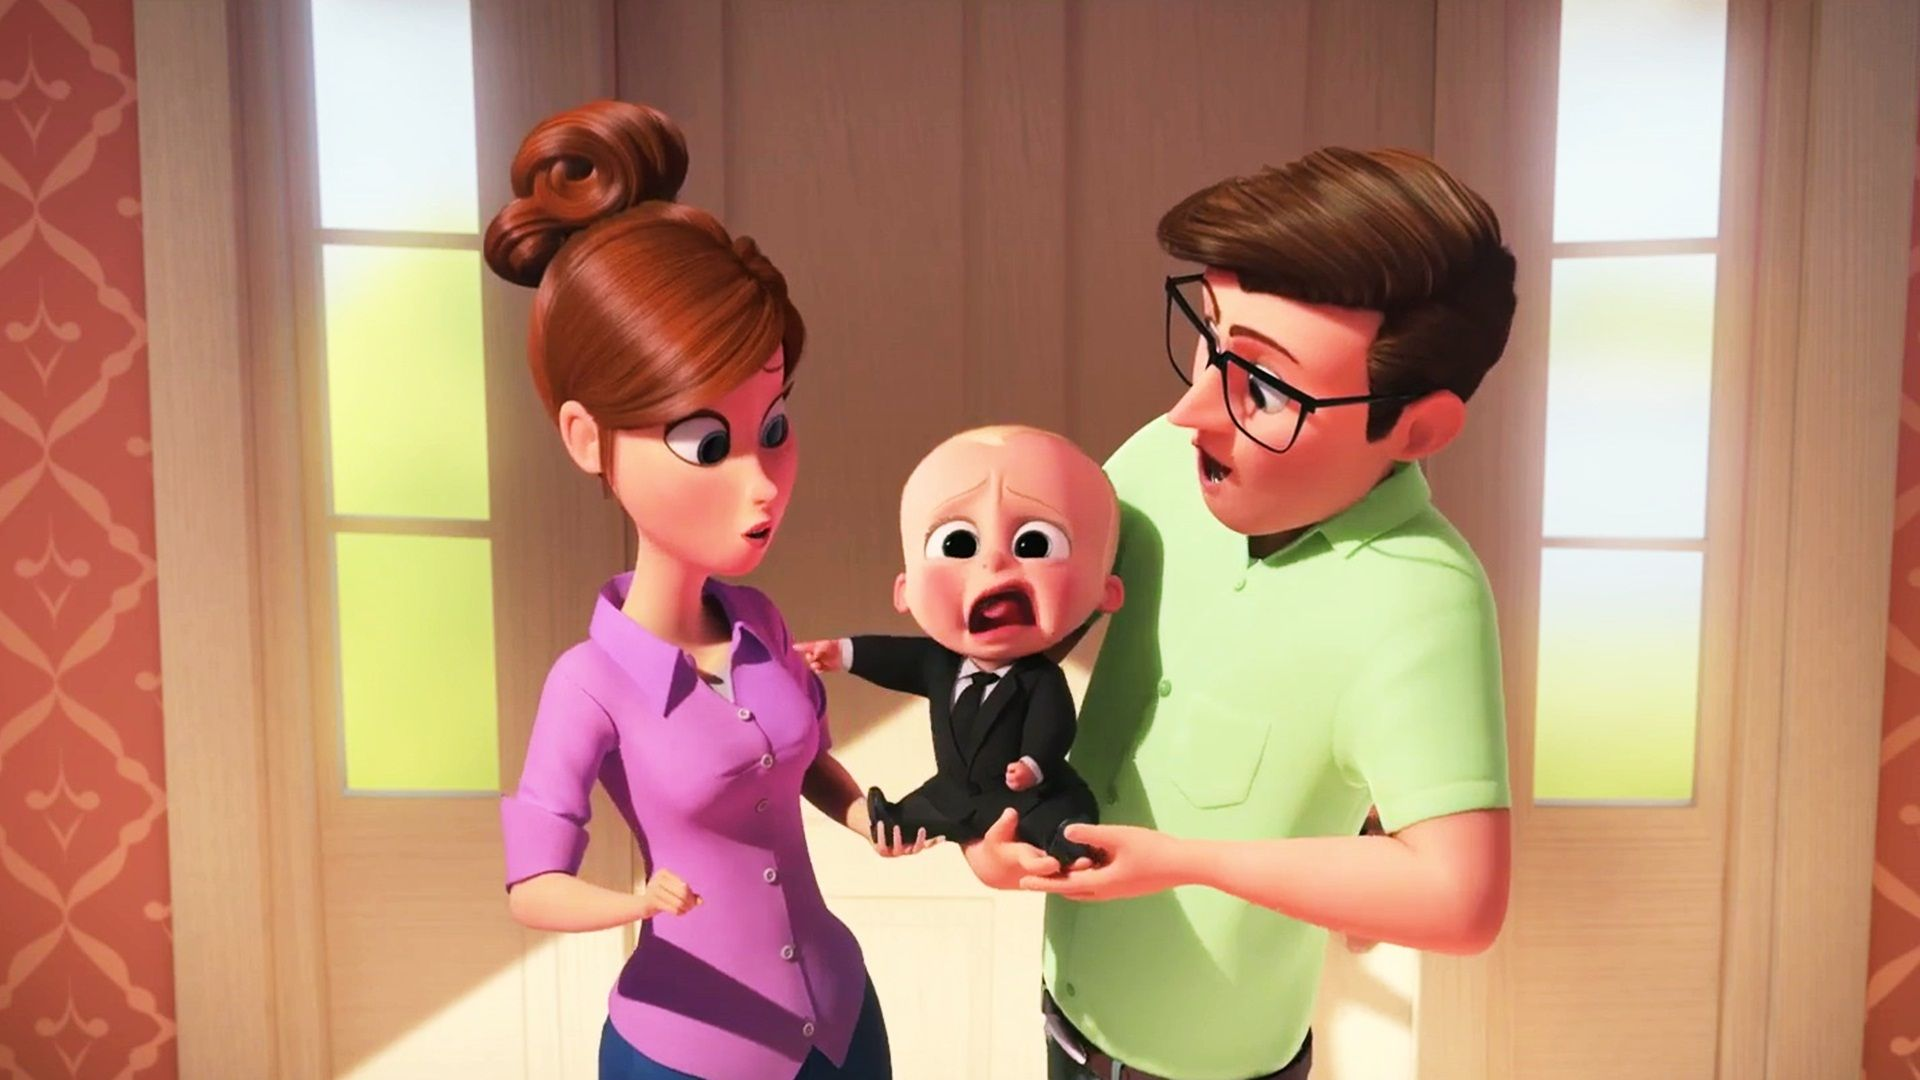 The Boss Baby HD Wallpapers Whb 7 TheBossBabyHDWallpapers TheBossBaby Movies